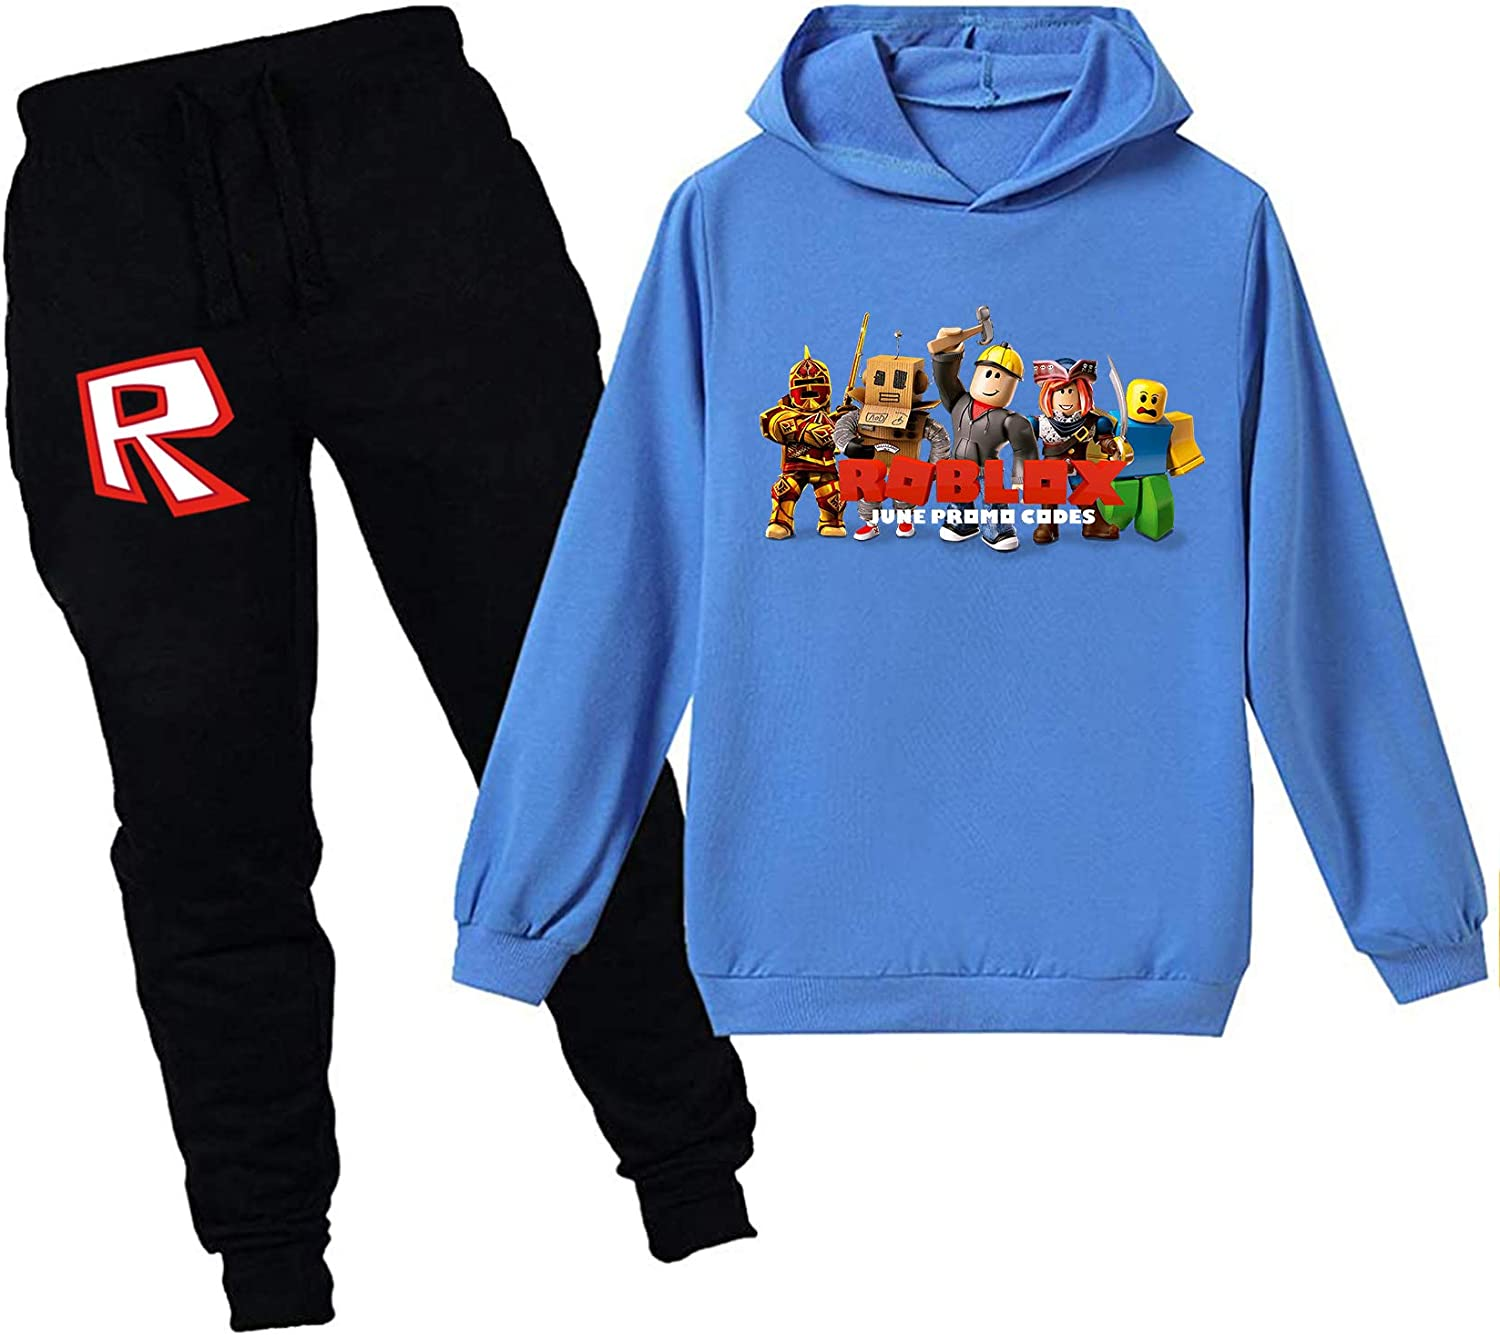 Tesefe Youth RO-BLOX Hoodies and Sweatpants Suit 2 Piece Outfit Tracksuit for Boys Girls